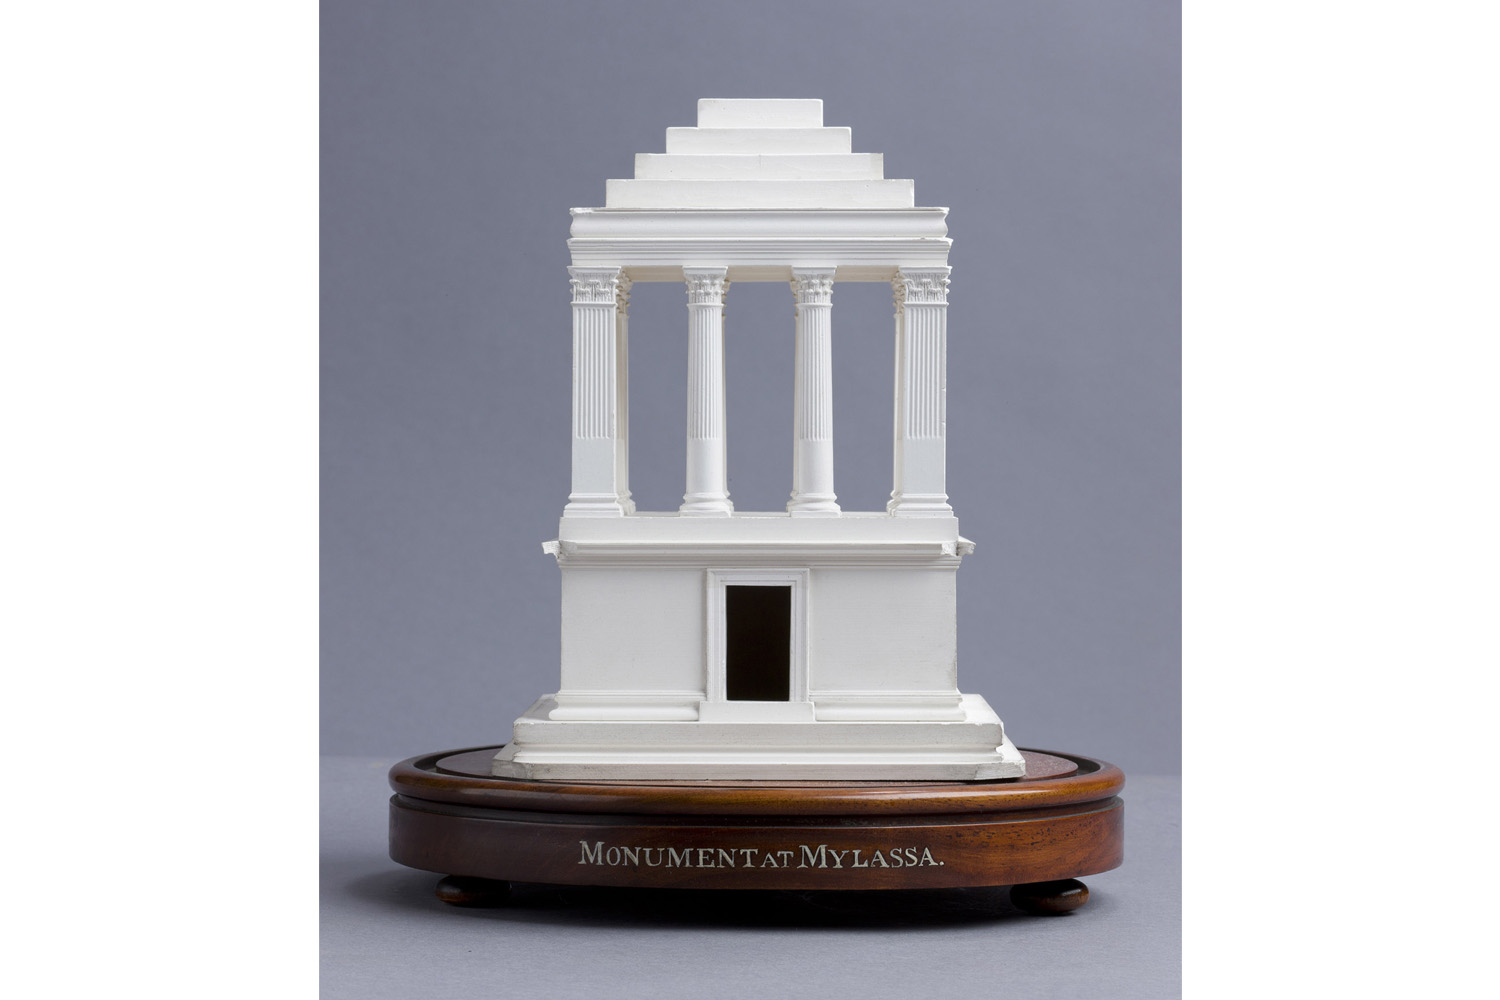 Plaster of Paris model of an ancient monument